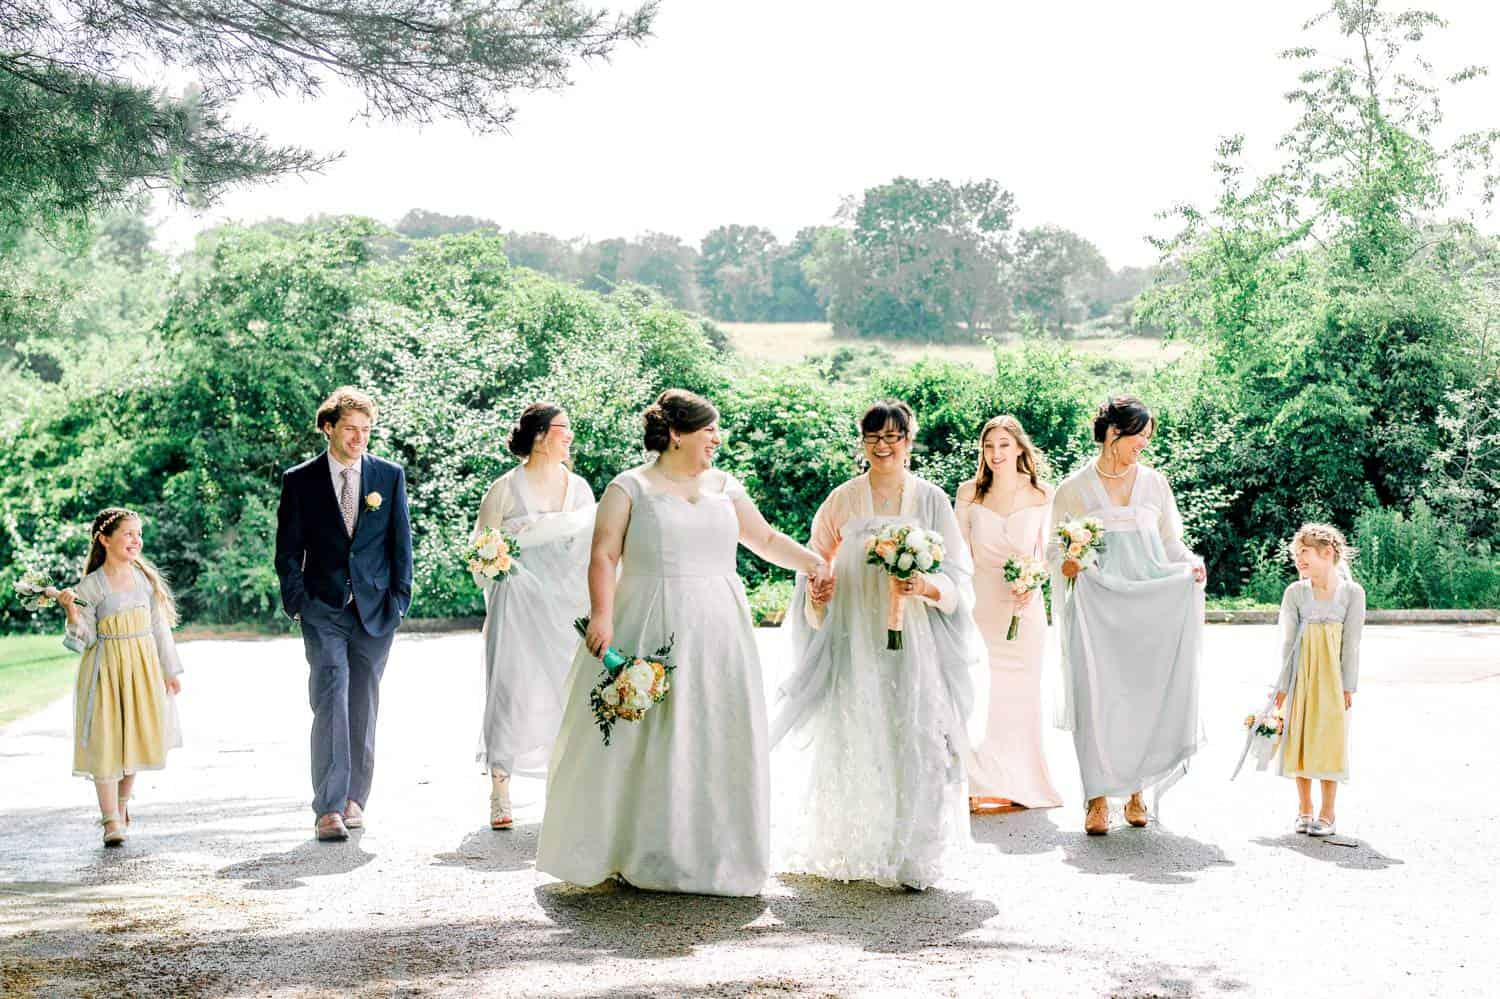 Two brides stroll under a tree. They are backlit by the bright sun, and surrounded by their wedding party.